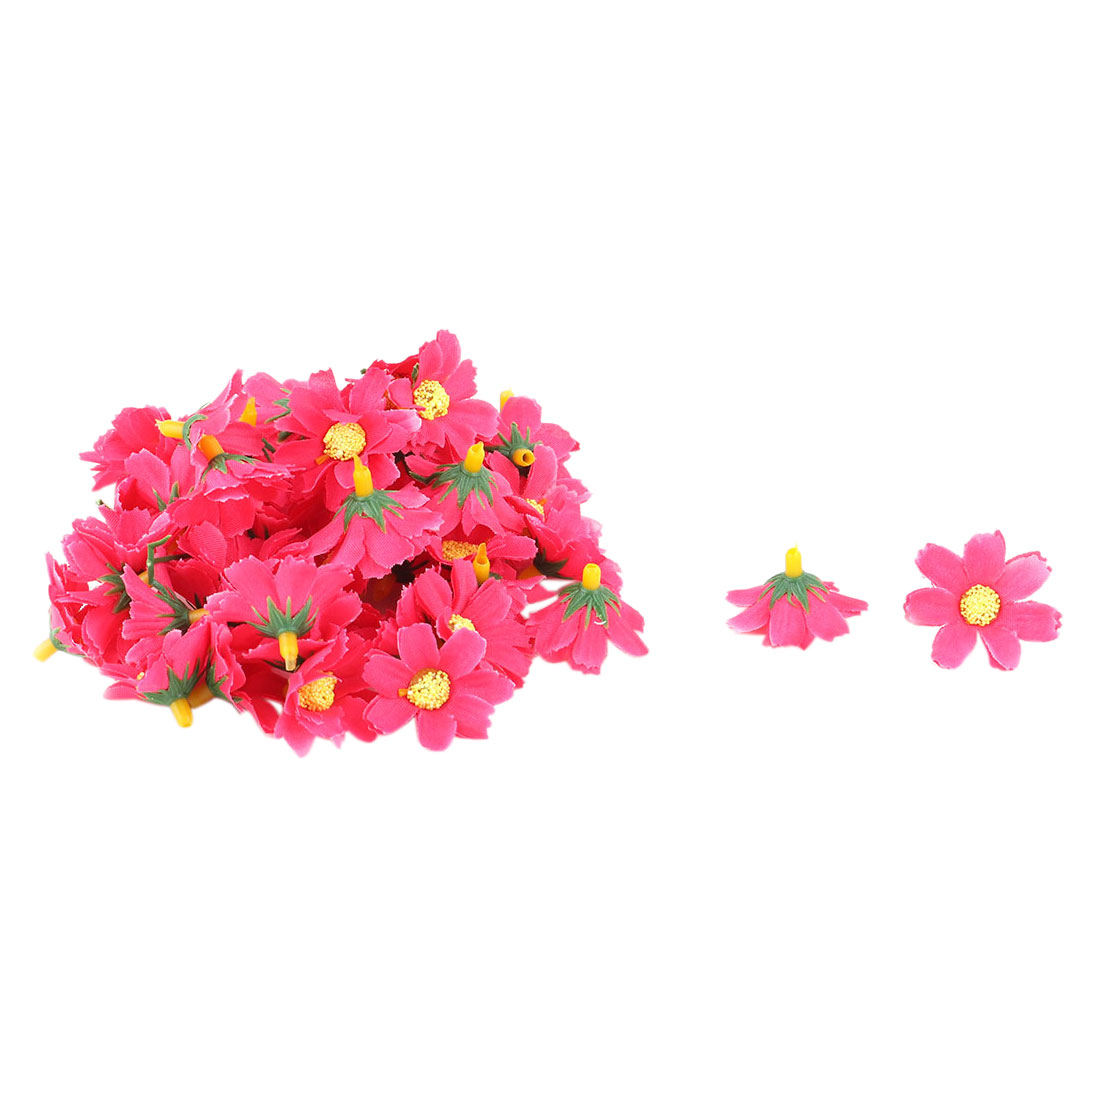 Garden Fabric Daisy Shaped DIY Decoration Table Flower Heads Fuchsia 50 Pcs